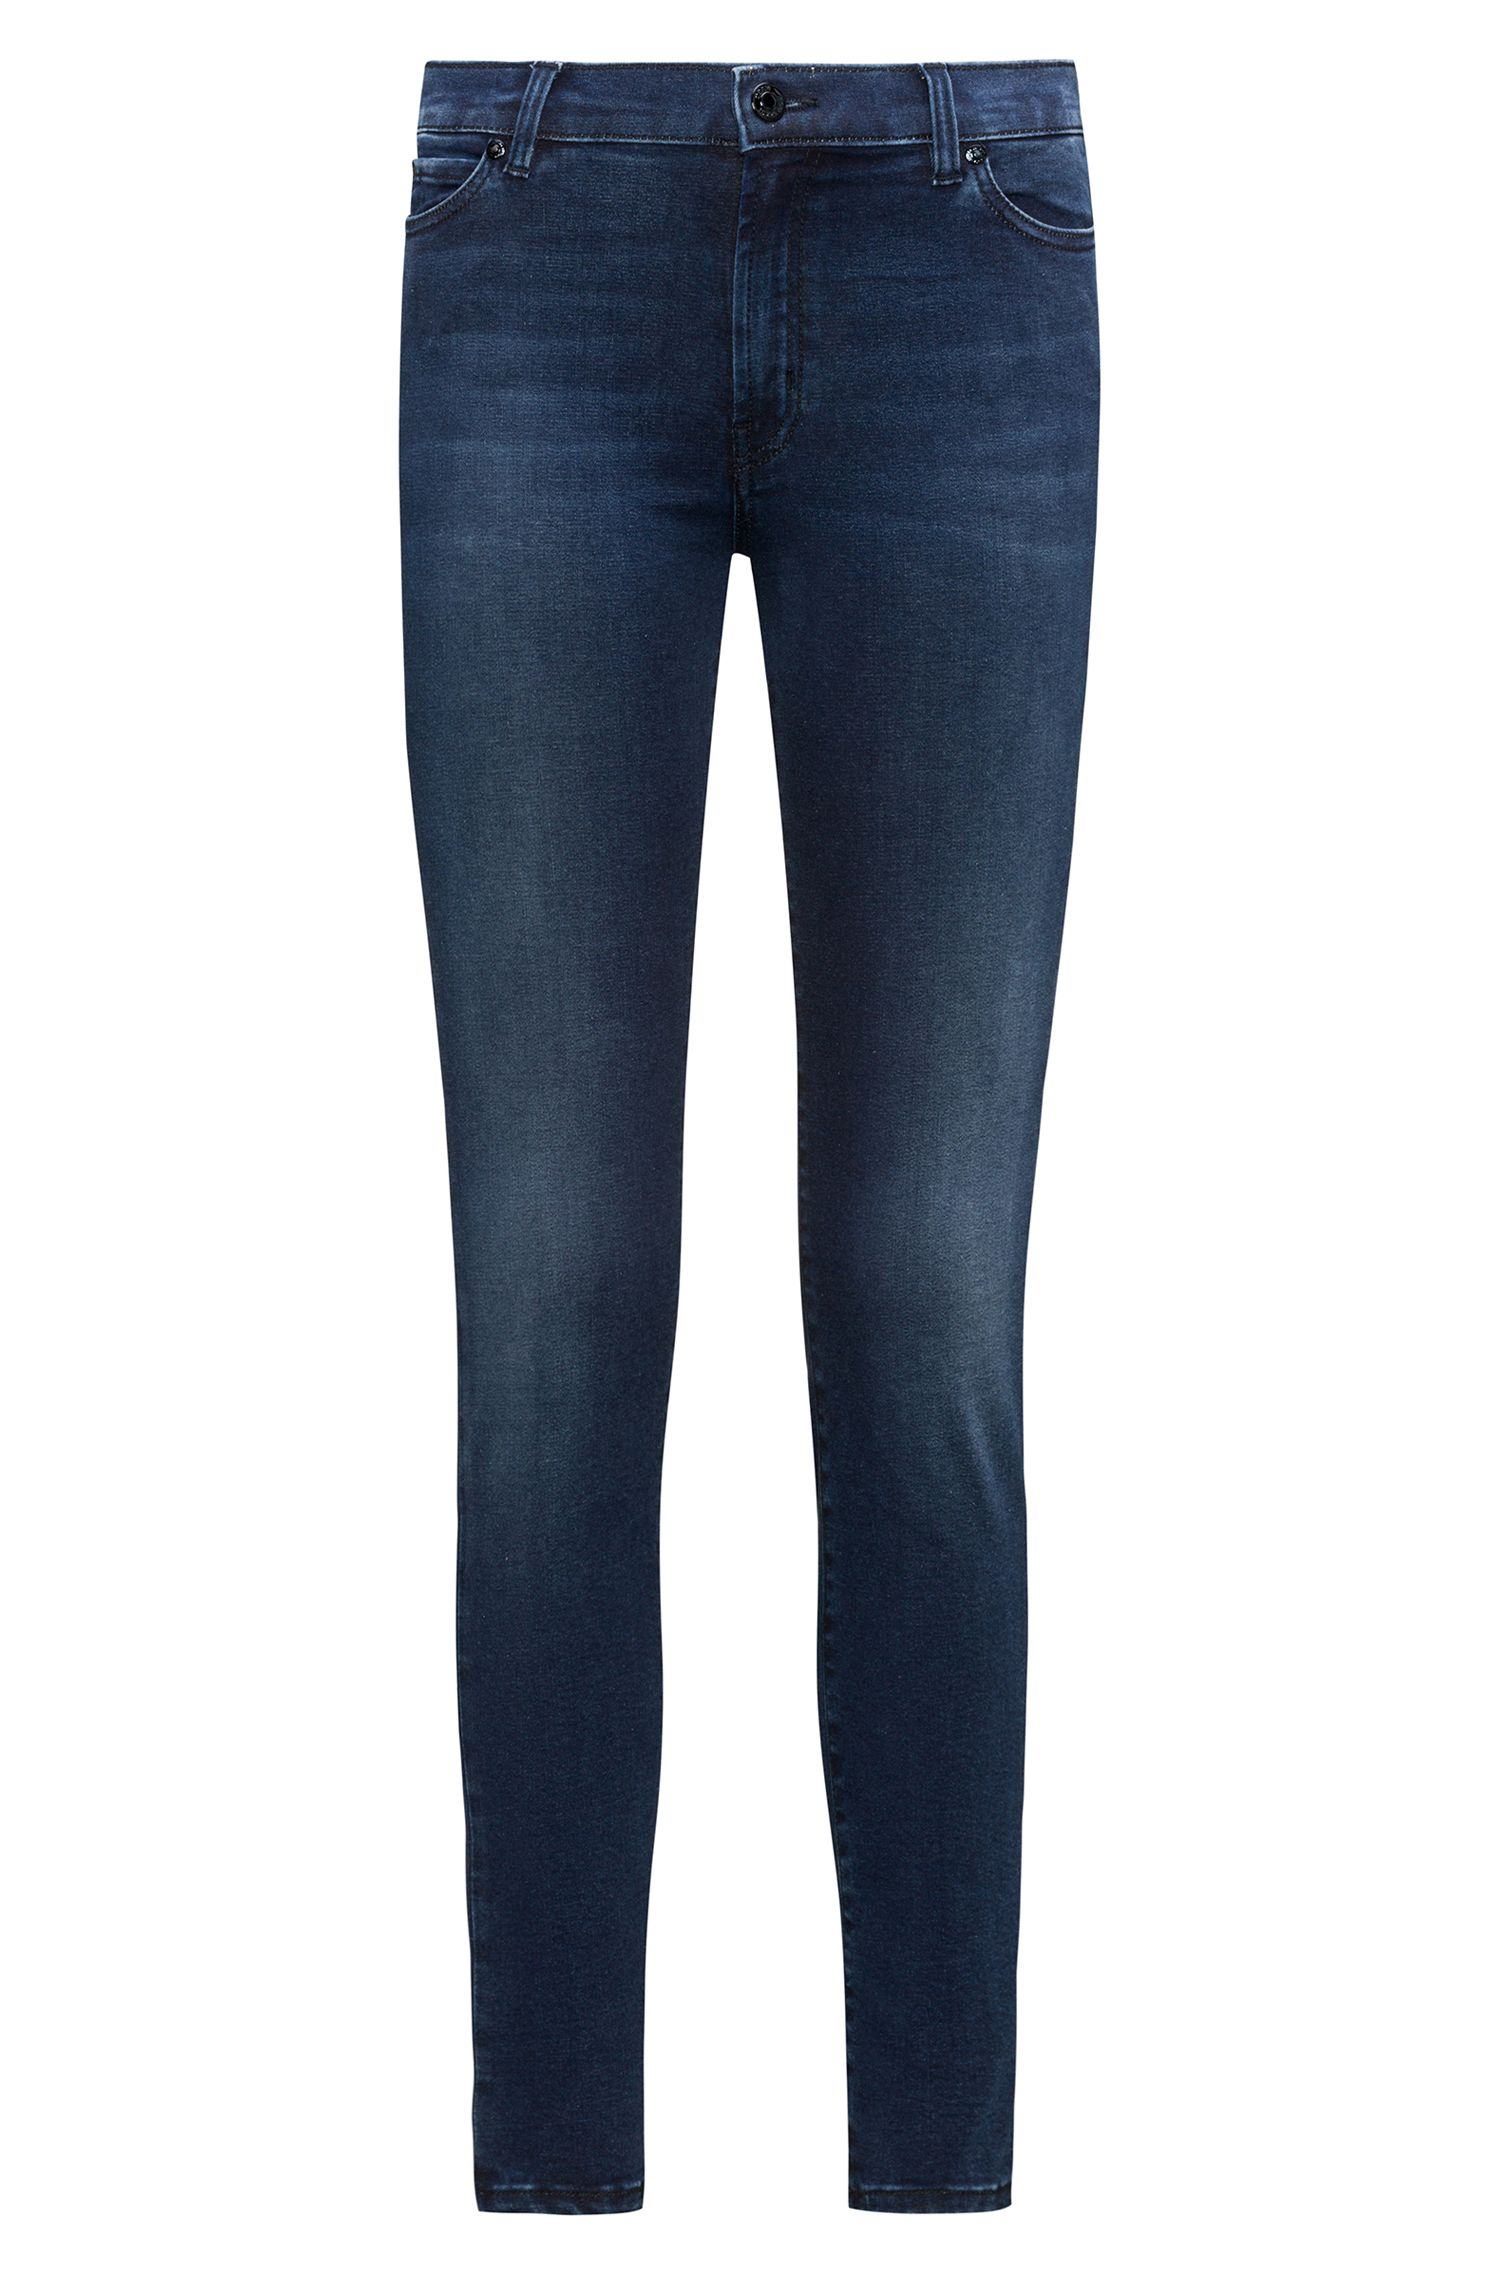 Jeans extra slim fit blu medio in denim super elasticizzato